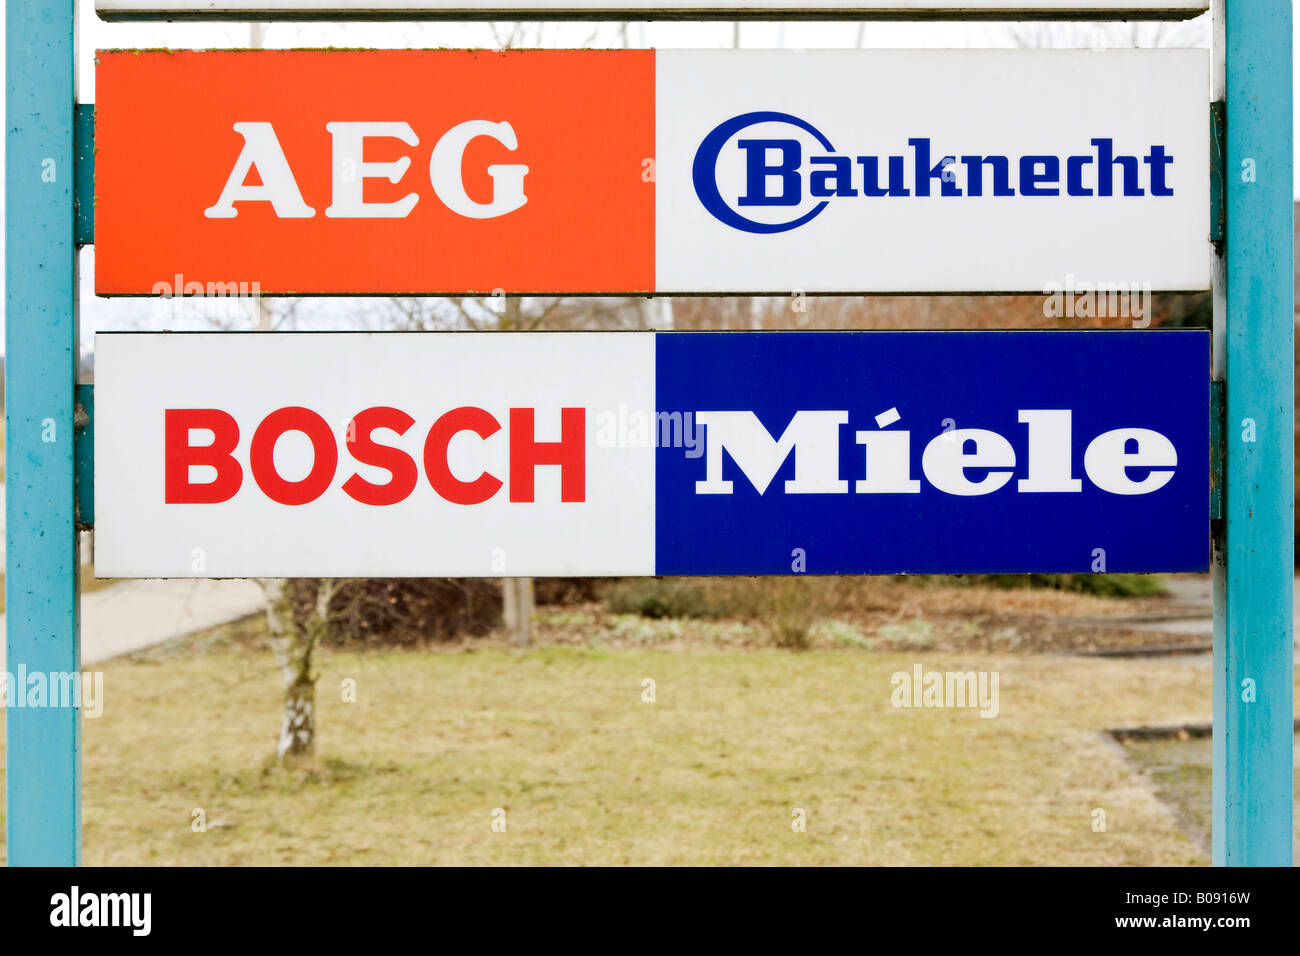 Kuchengerate Stock Photos Kuchengerate Stock Images Alamy